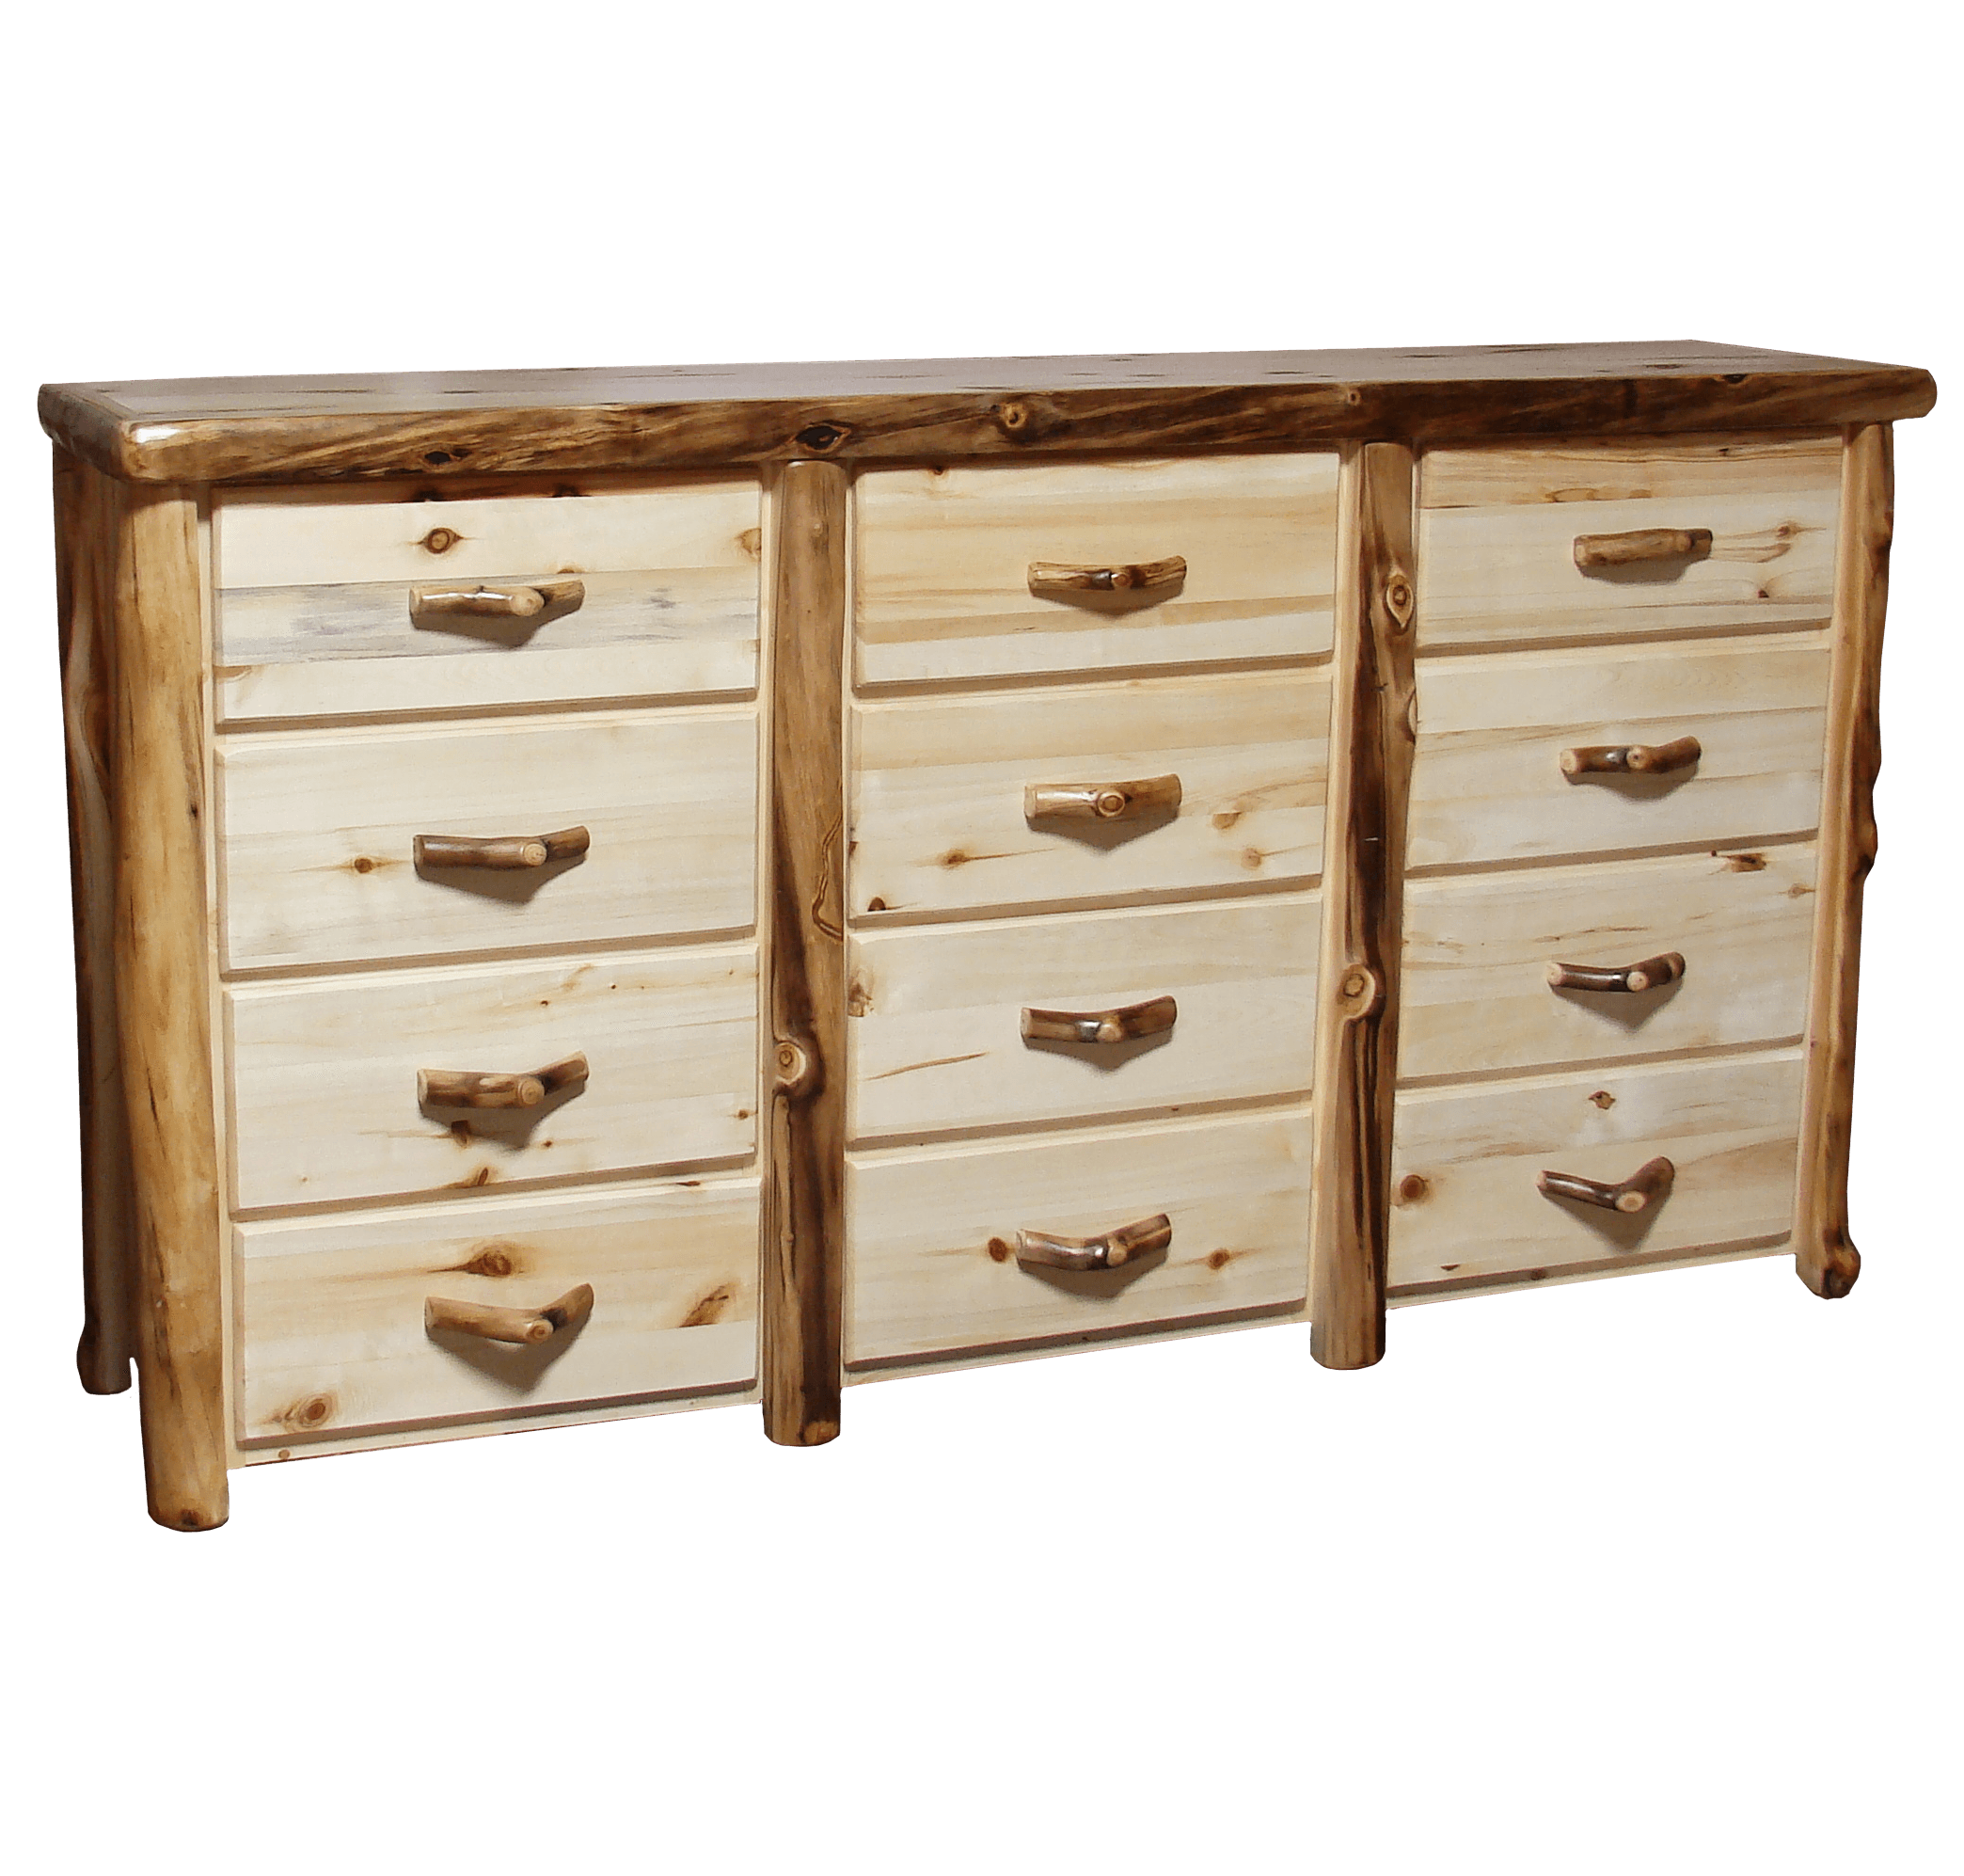 drawers small of cabins chest barns aspen drawer product wood furniture horse cupboard log